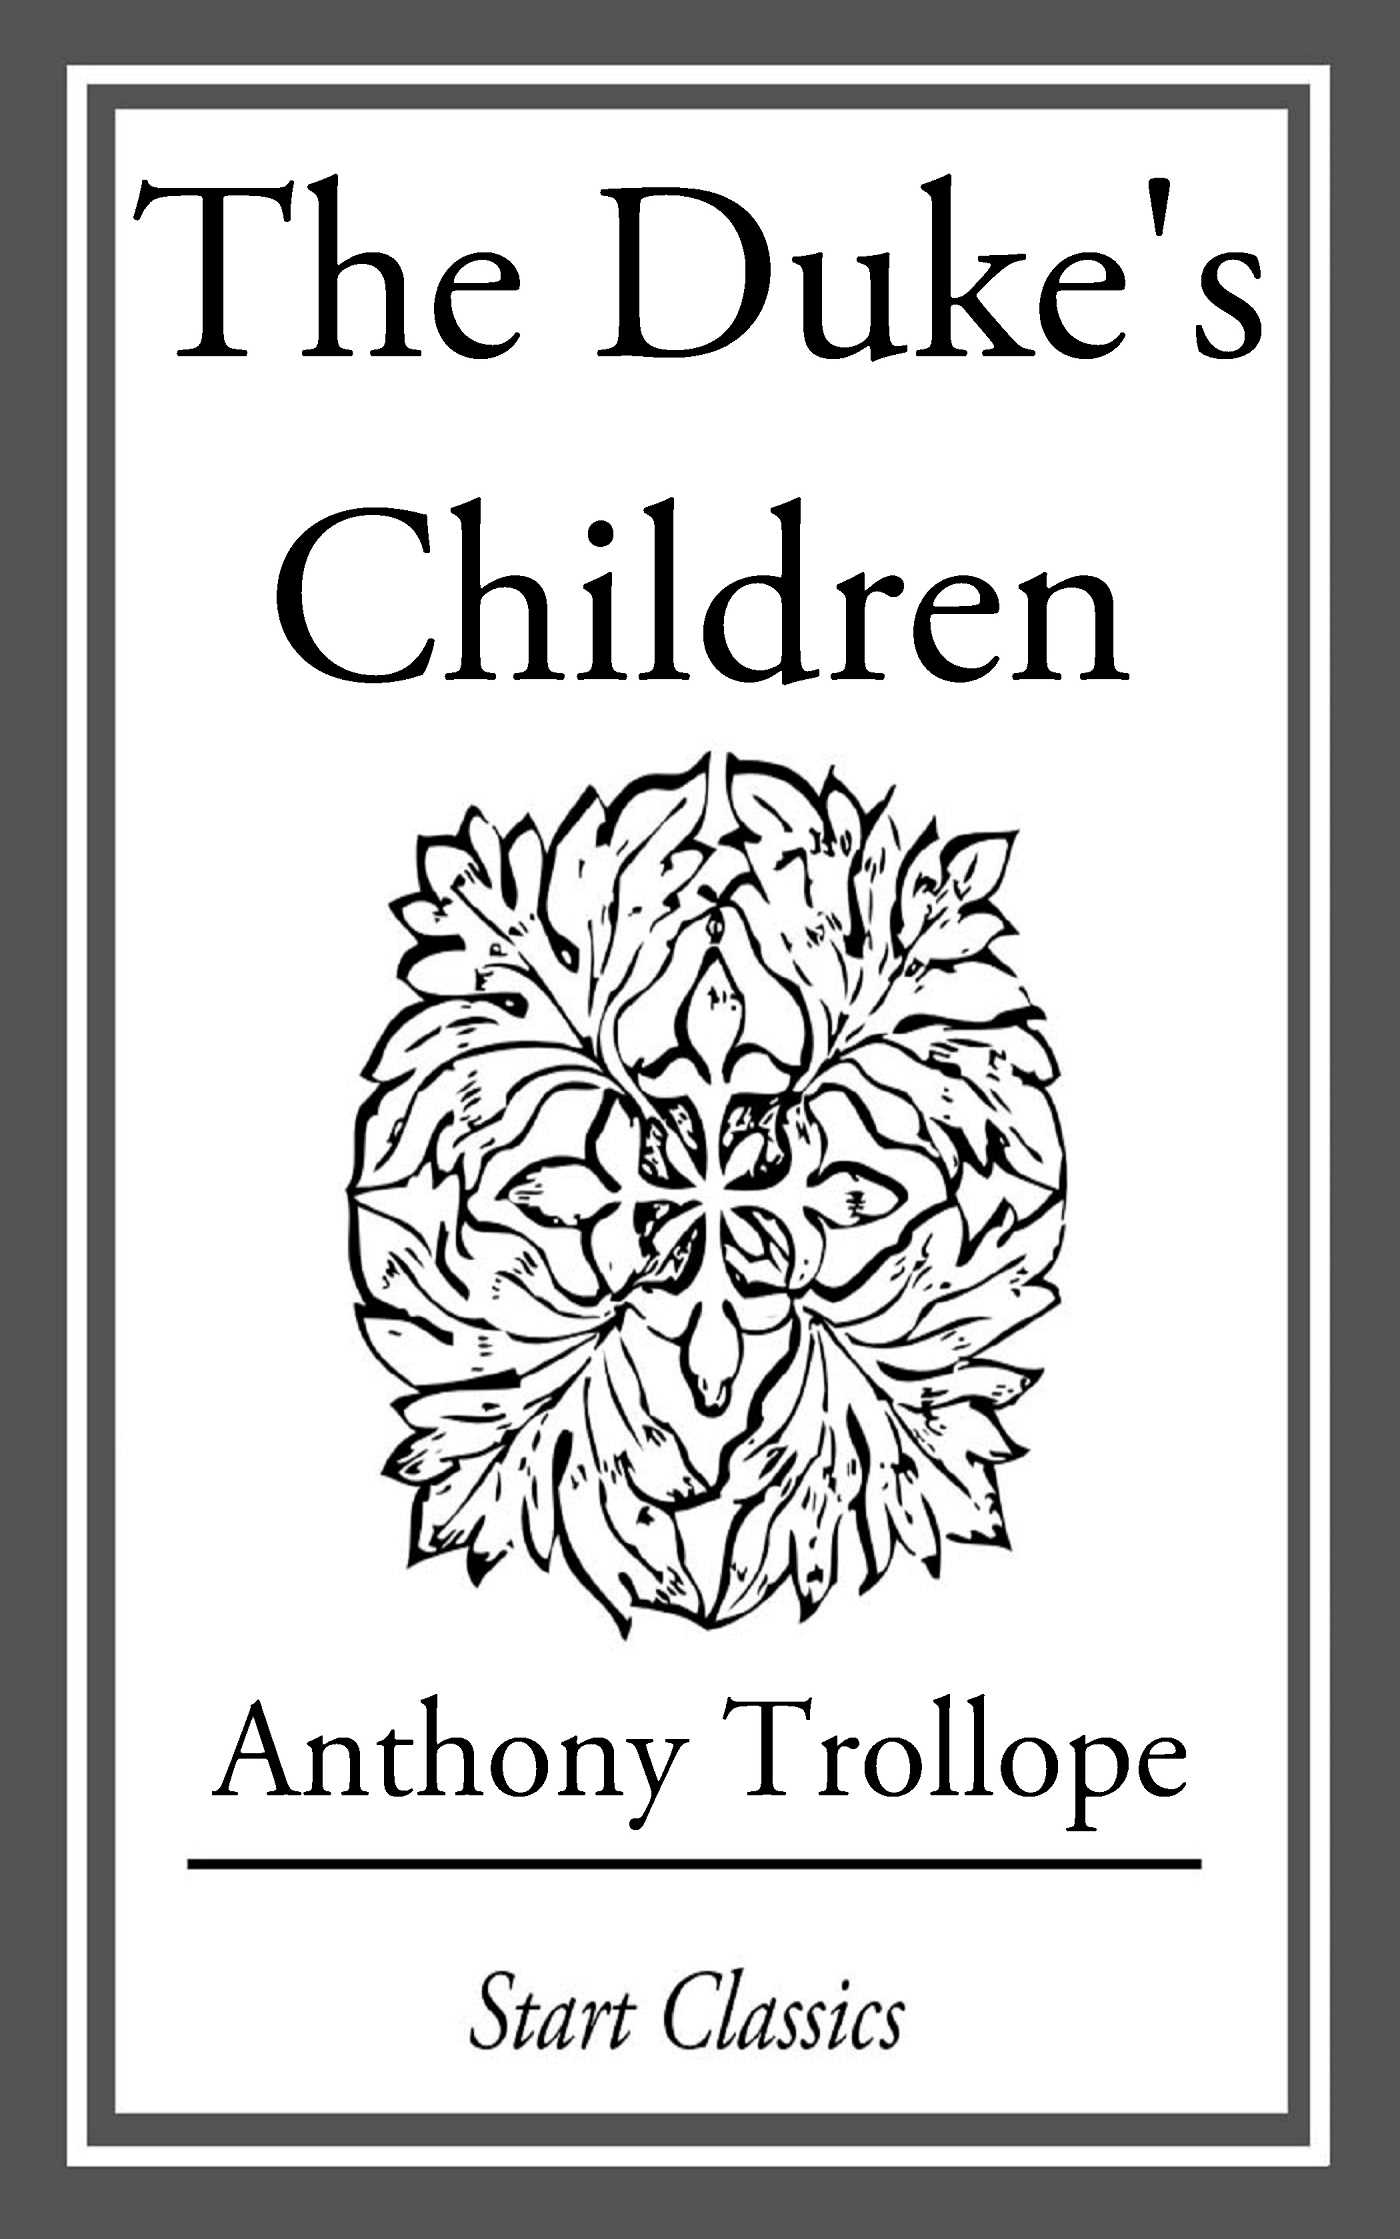 The Duke's Children eBook by Anthony Trollope | Official Publisher